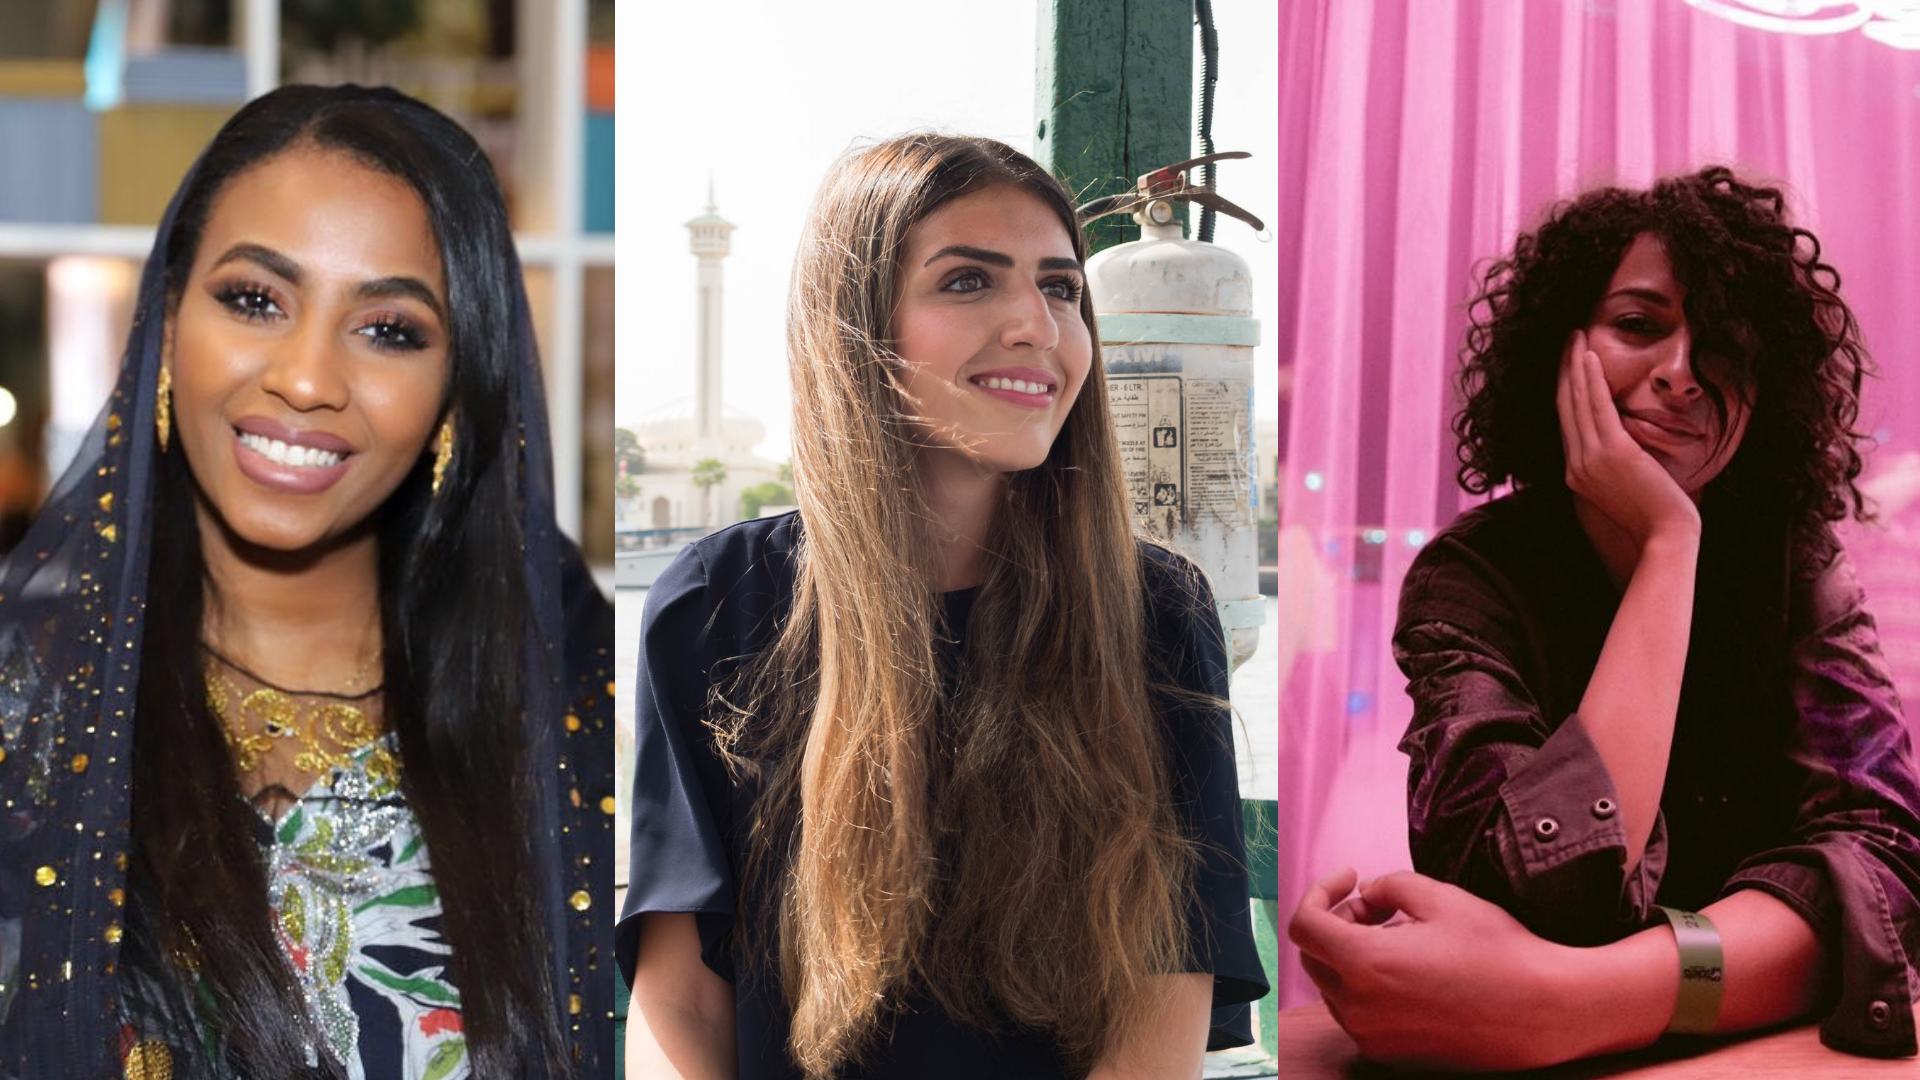 The Incredible Way Airbnb Is Empowering Middle Eastern Women